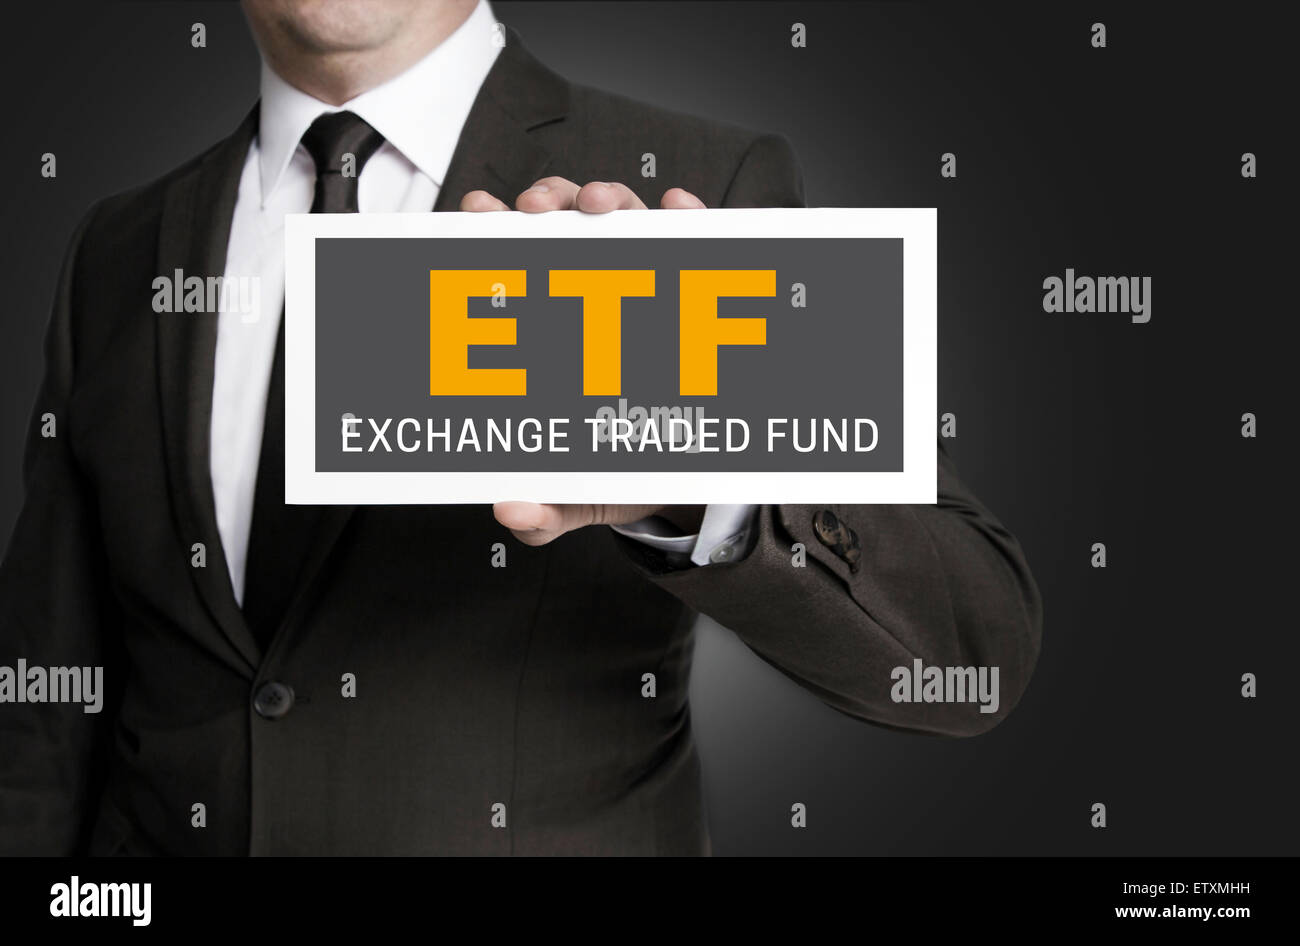 ETF sign is held by businessman. Stock Photo